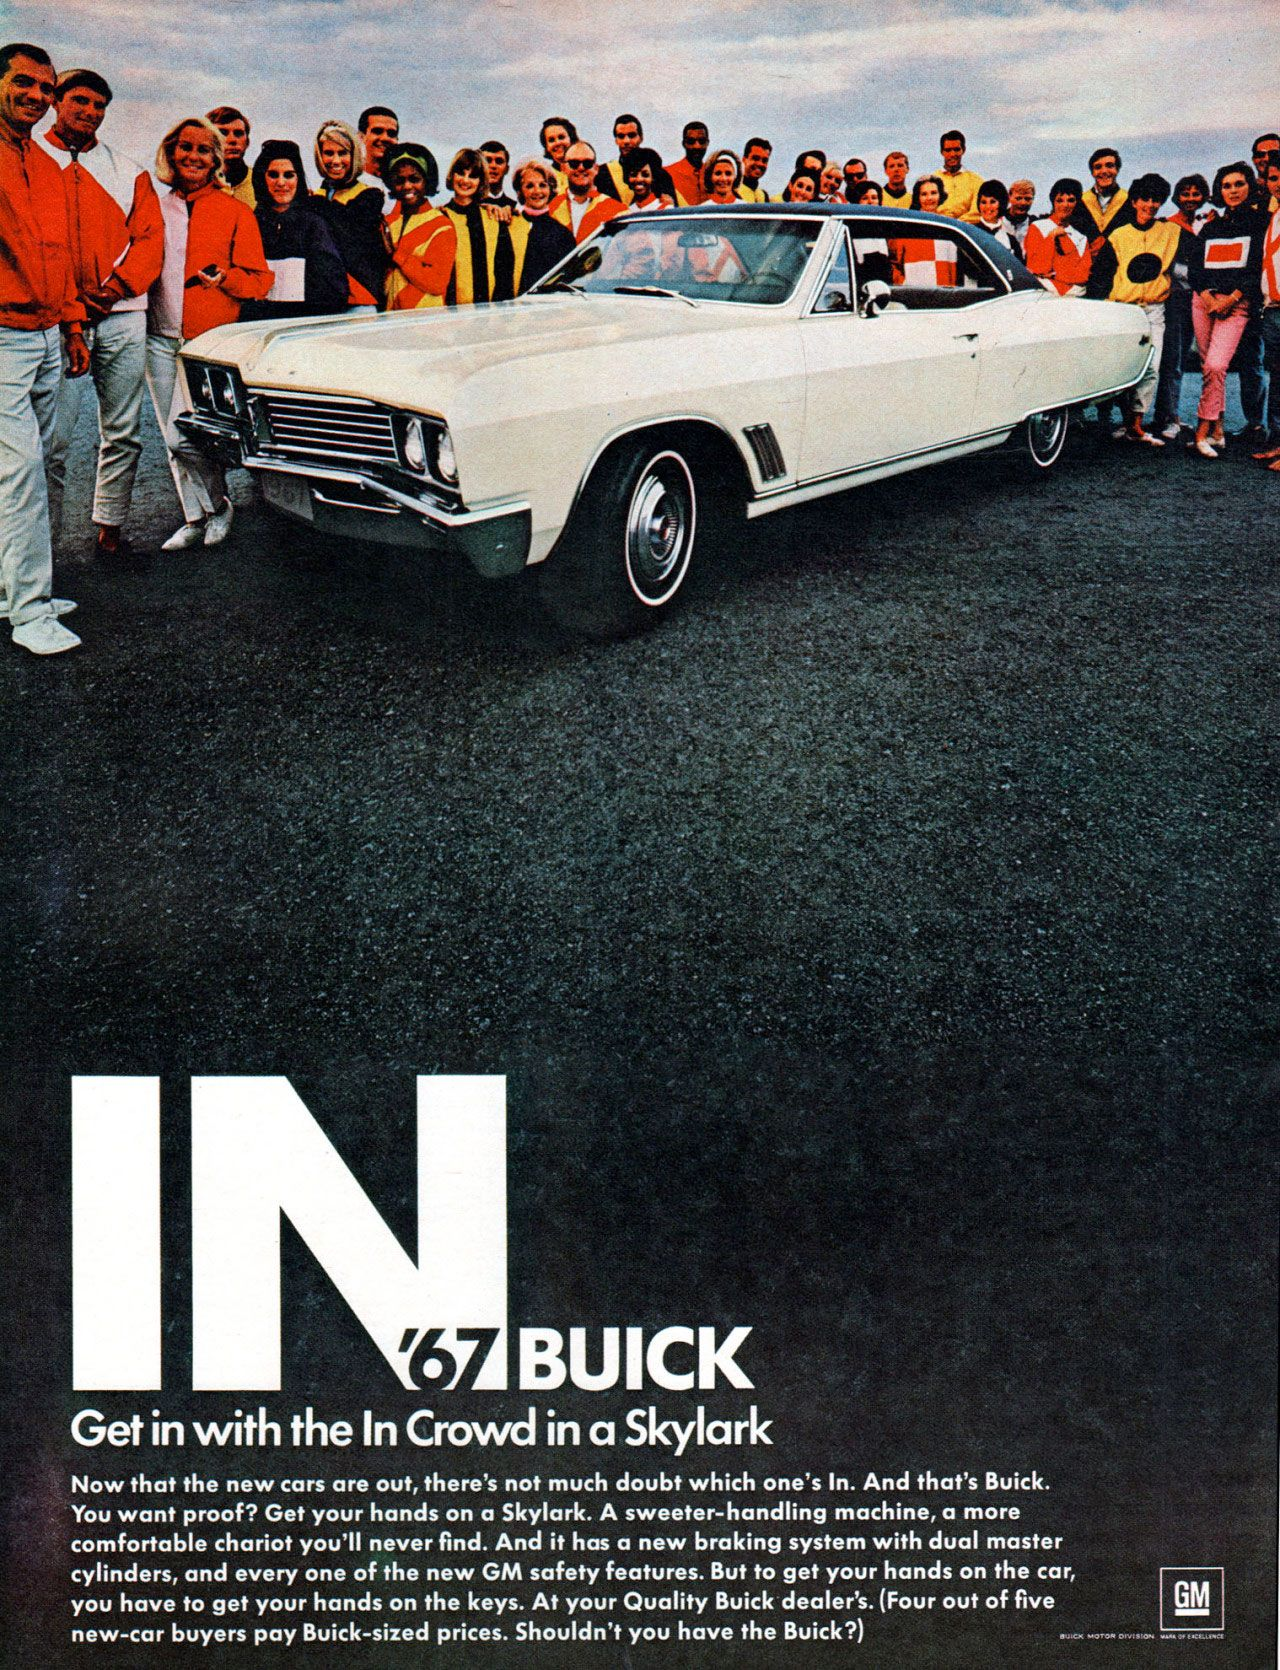 Get in with the In Crowd in a 1967 Buick Skylark. Now that the new cars are out, there's not much doubt which one's In. And that's Buick. You want proof? Get your hands on a Skylark. A sweeter-handling machine, a more comfortable chariot you'll never find. And it has a new braking system with dual master cylinders, and every one of the new GM safety features. But to get your hands on the car, you have to get your hands on the keys. At your Quality Buick dealer's. (Four out of five new-car buyers pay Buick-sized prices. Shouldn't you have the Buick?)